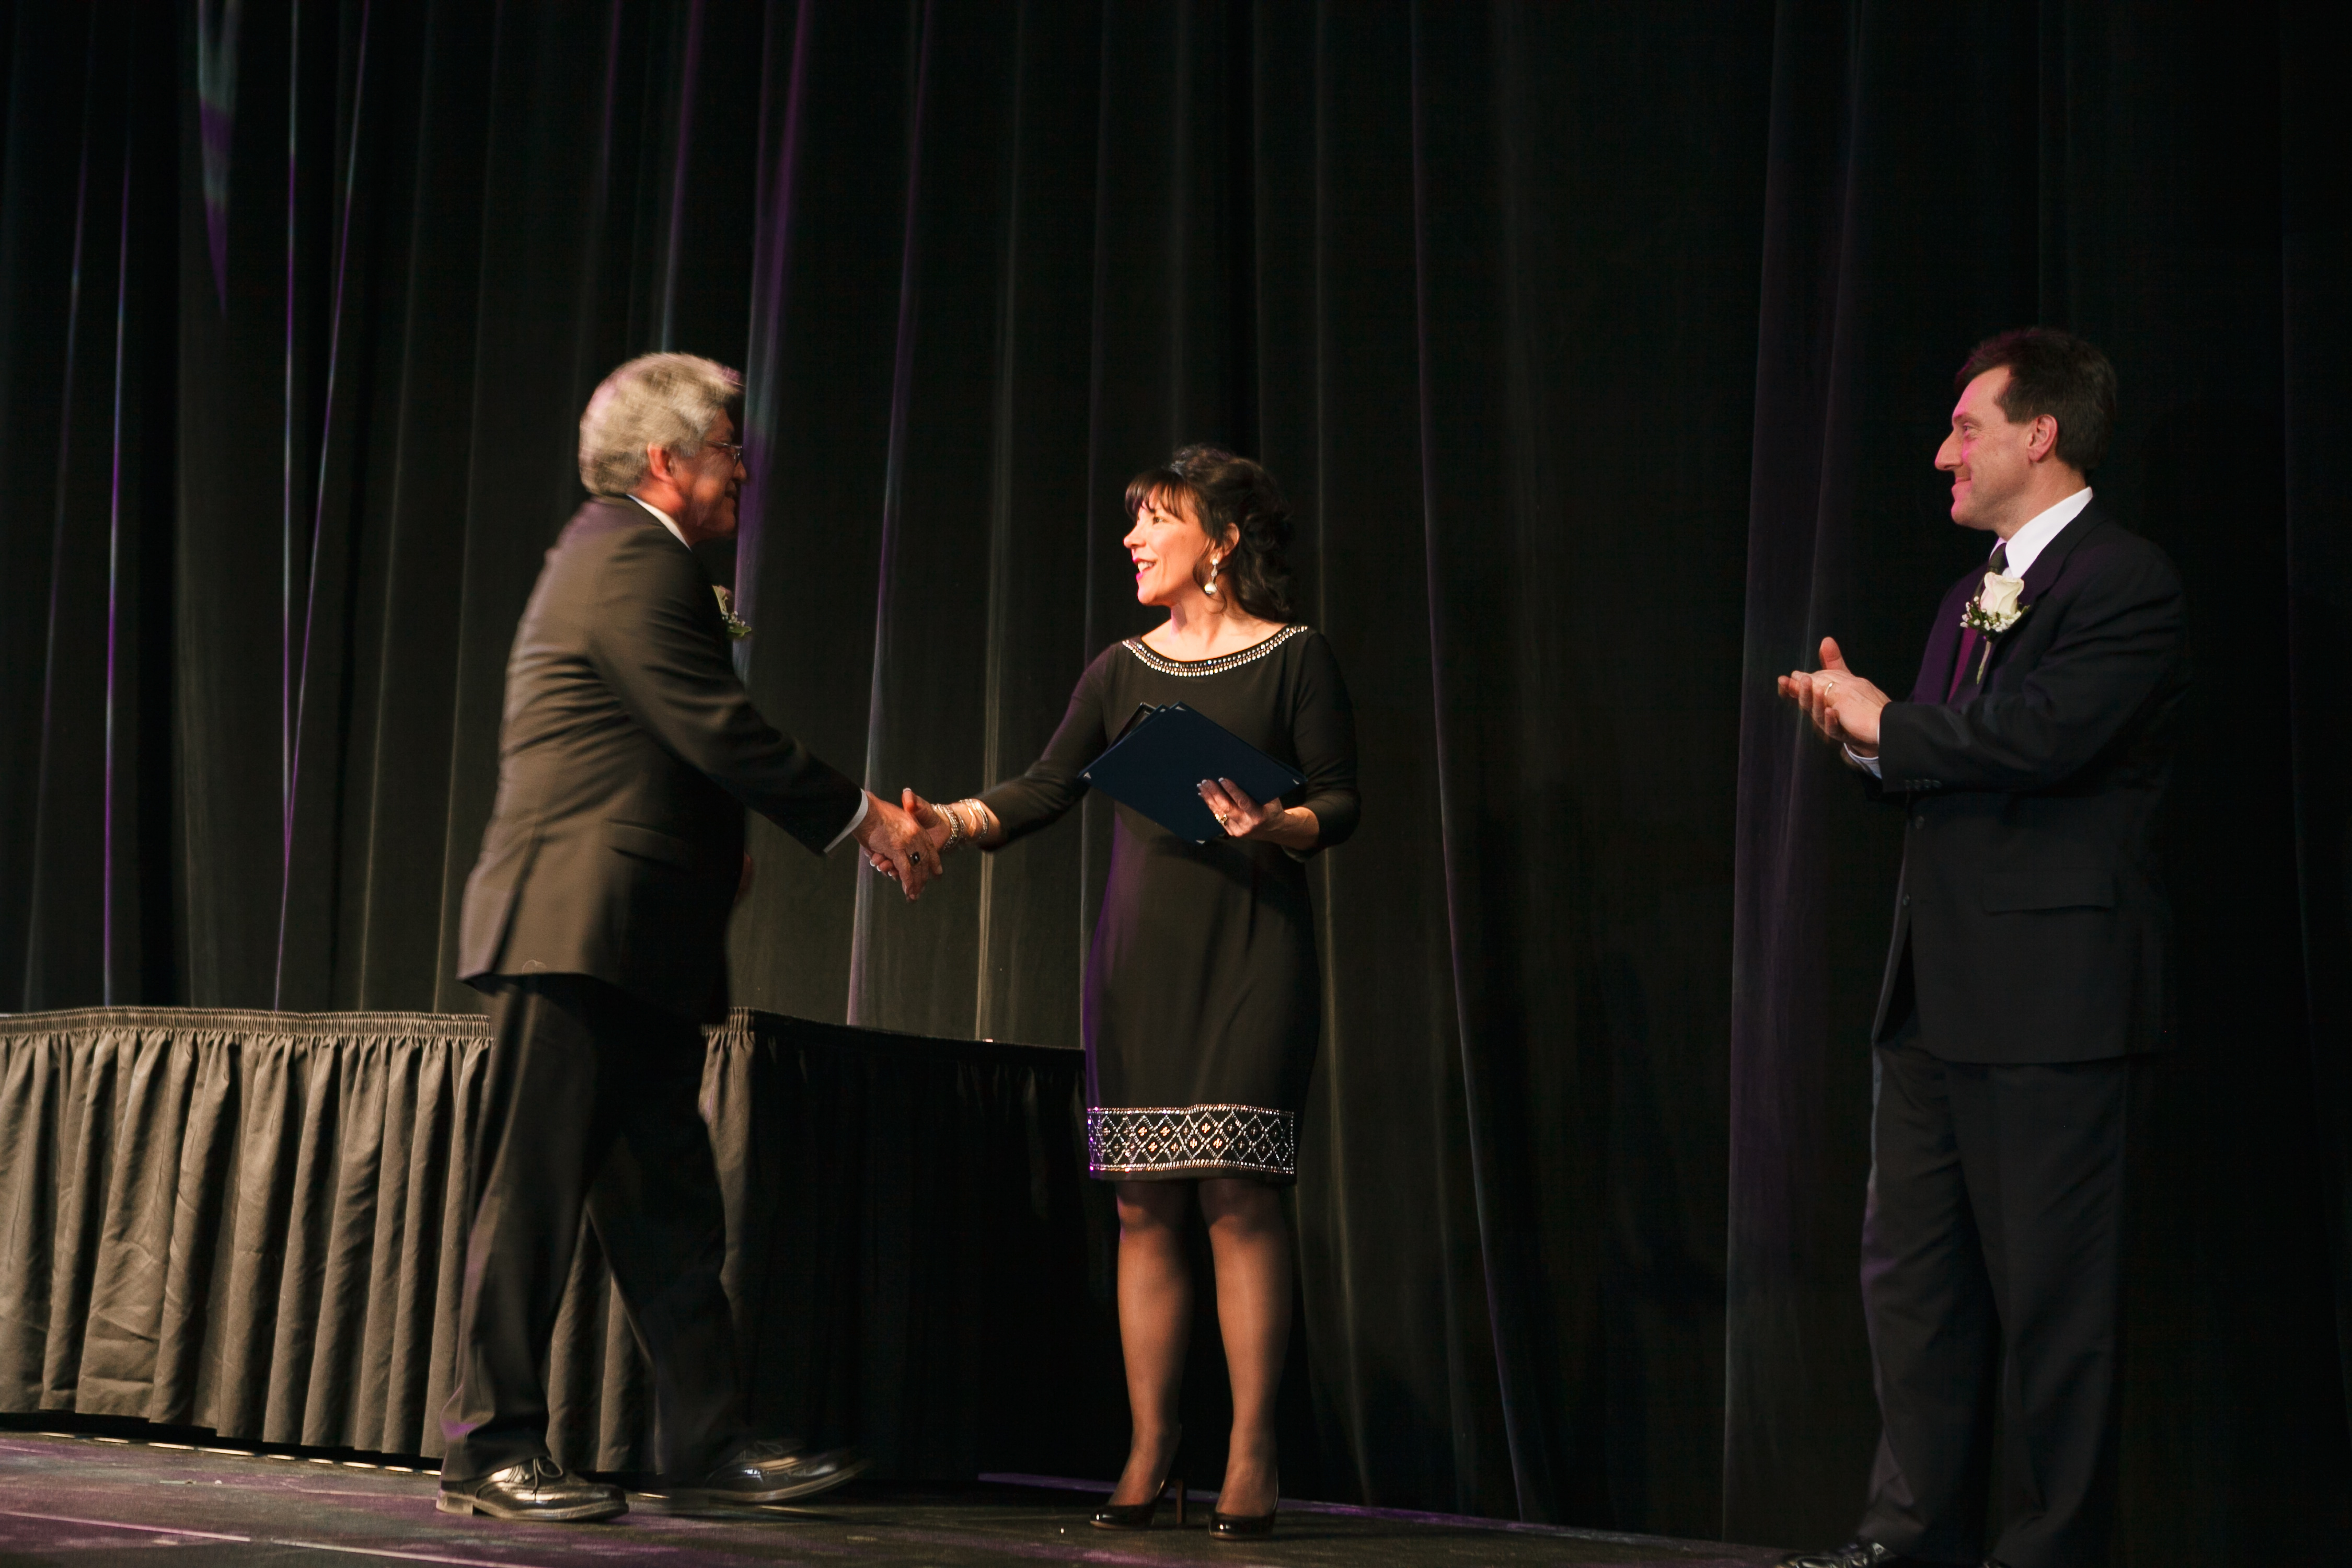 Dale Snyder accepts Green Manufacturing Award from Niagara USA Chamber President & CEO Deanna Alterio Brennen & National Grid Manager, Customer & Community Management Ken Kujawa